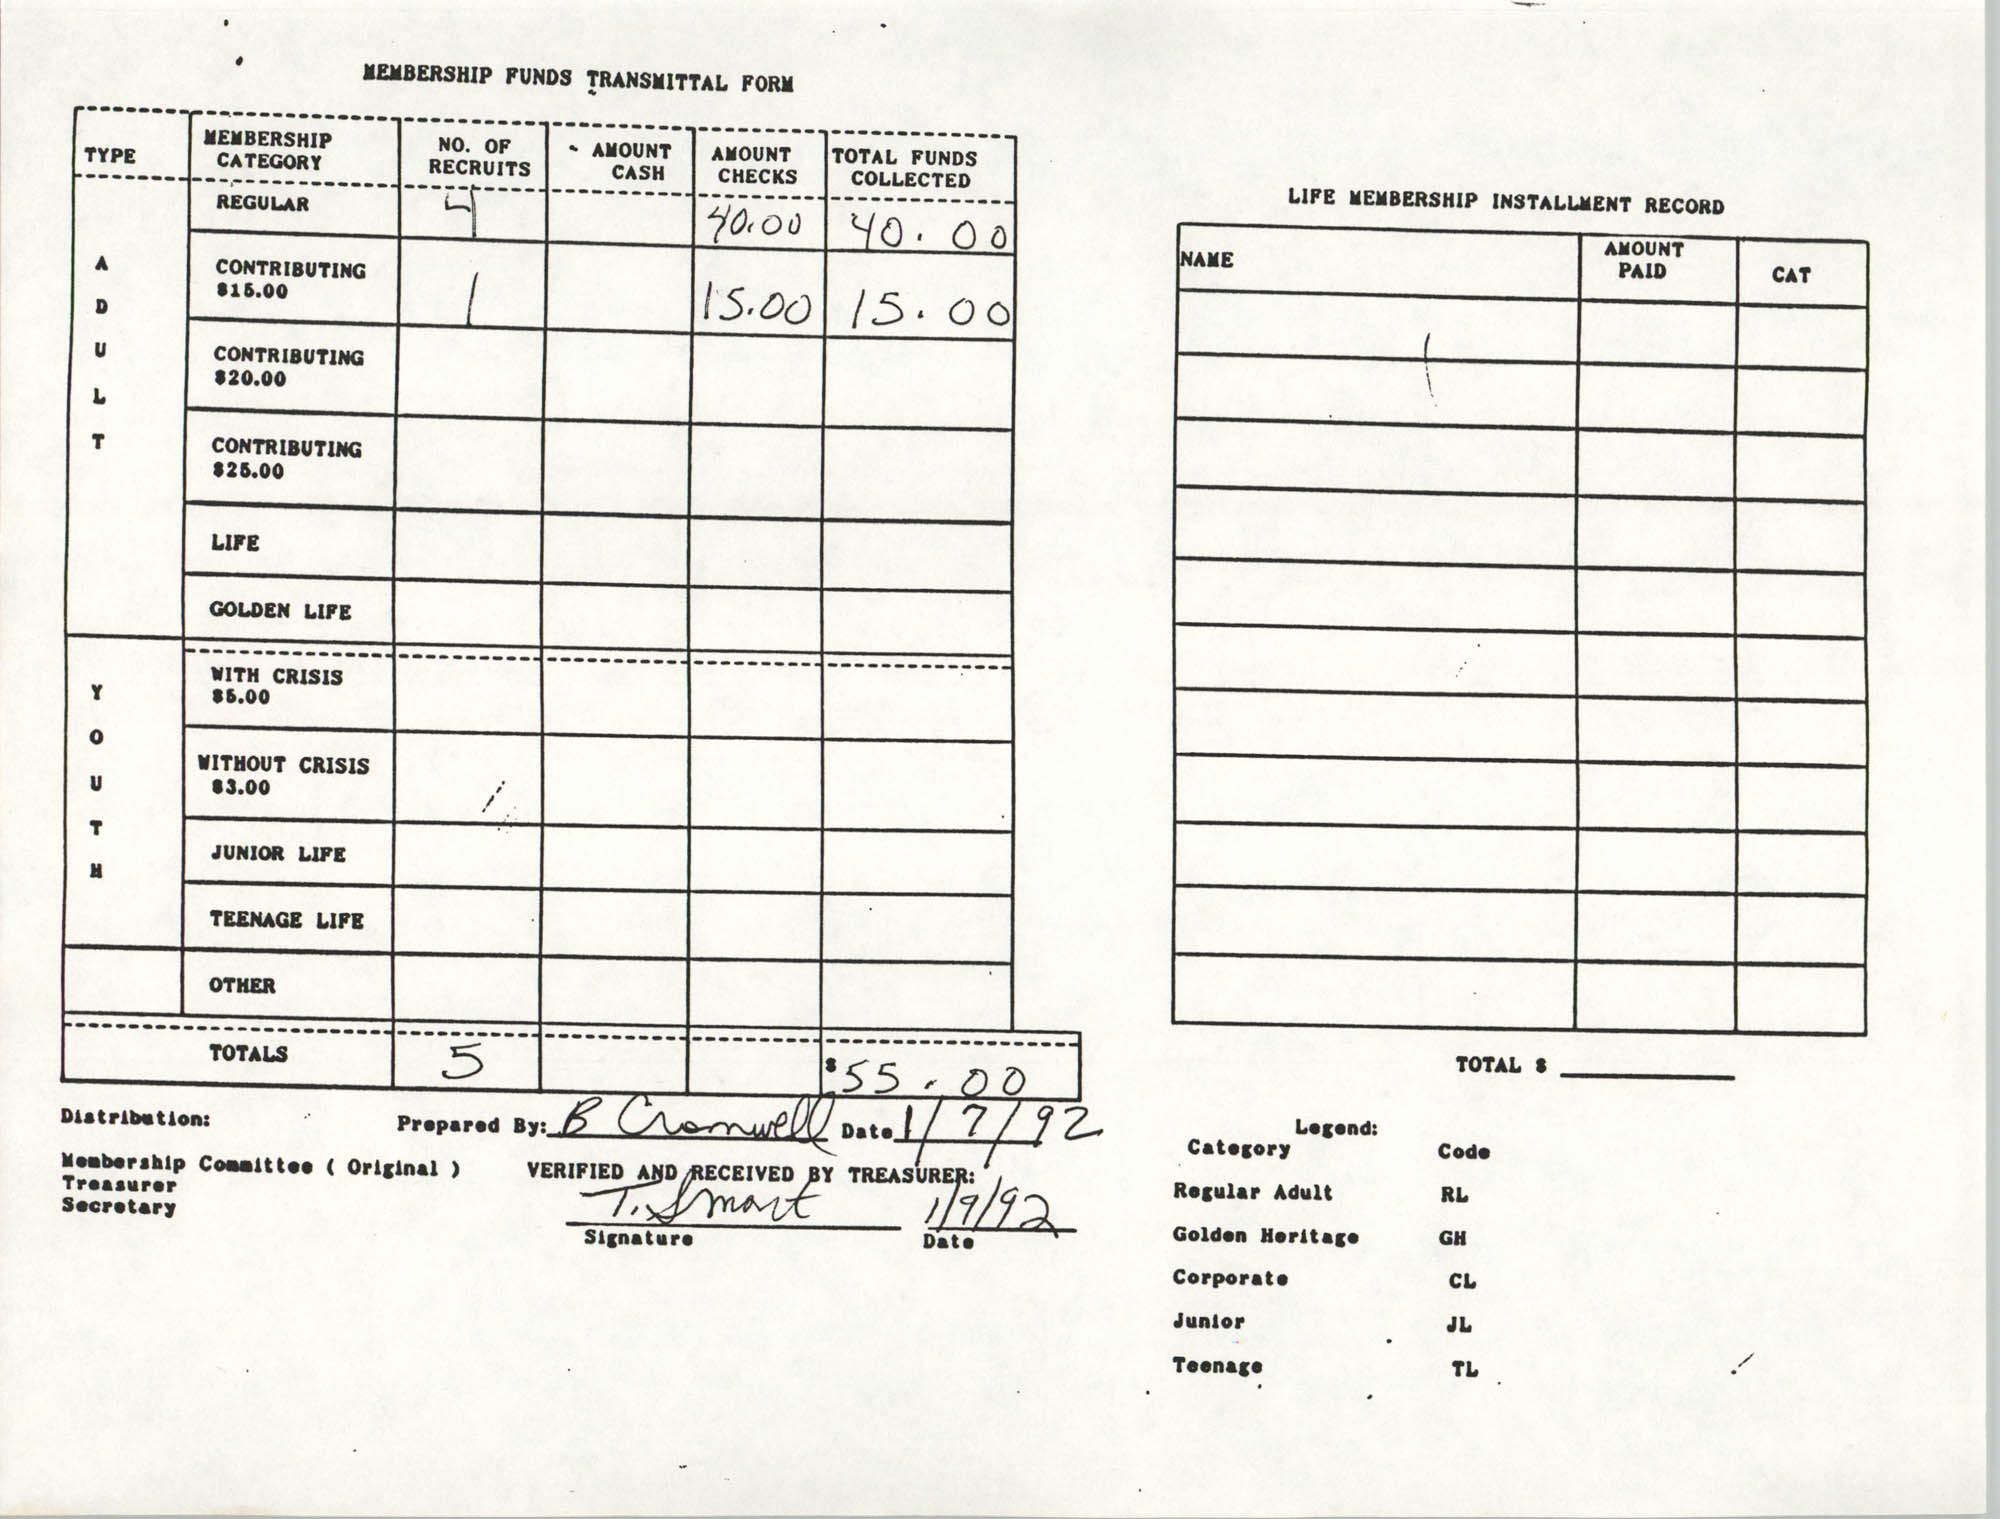 Charleston Branch of the NAACP Funds Transmittal Forms, January 1992, Page 1